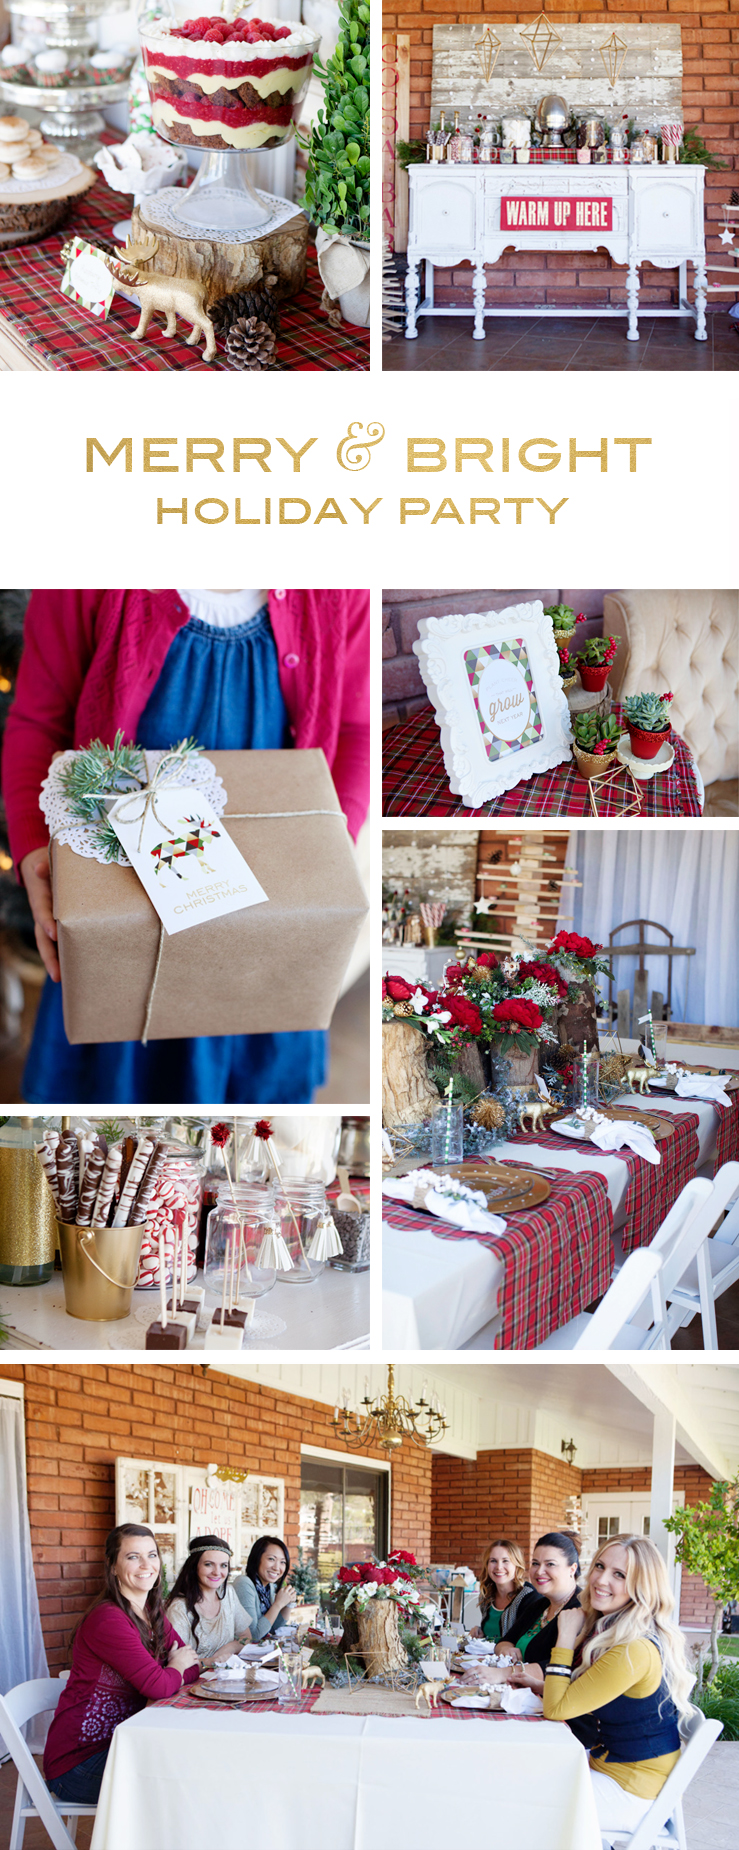 Merry and Bright Holiday Party | Printables, DIY projects, Recipes and more!